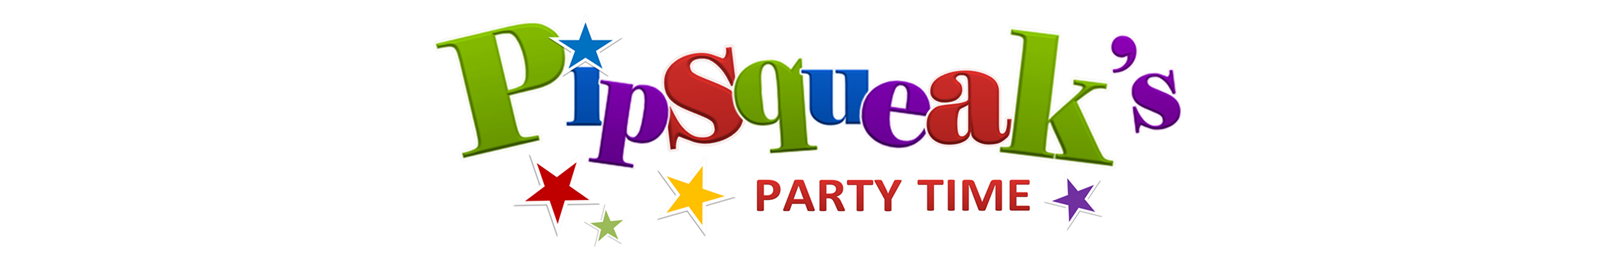 Pipsqueak's Party Time